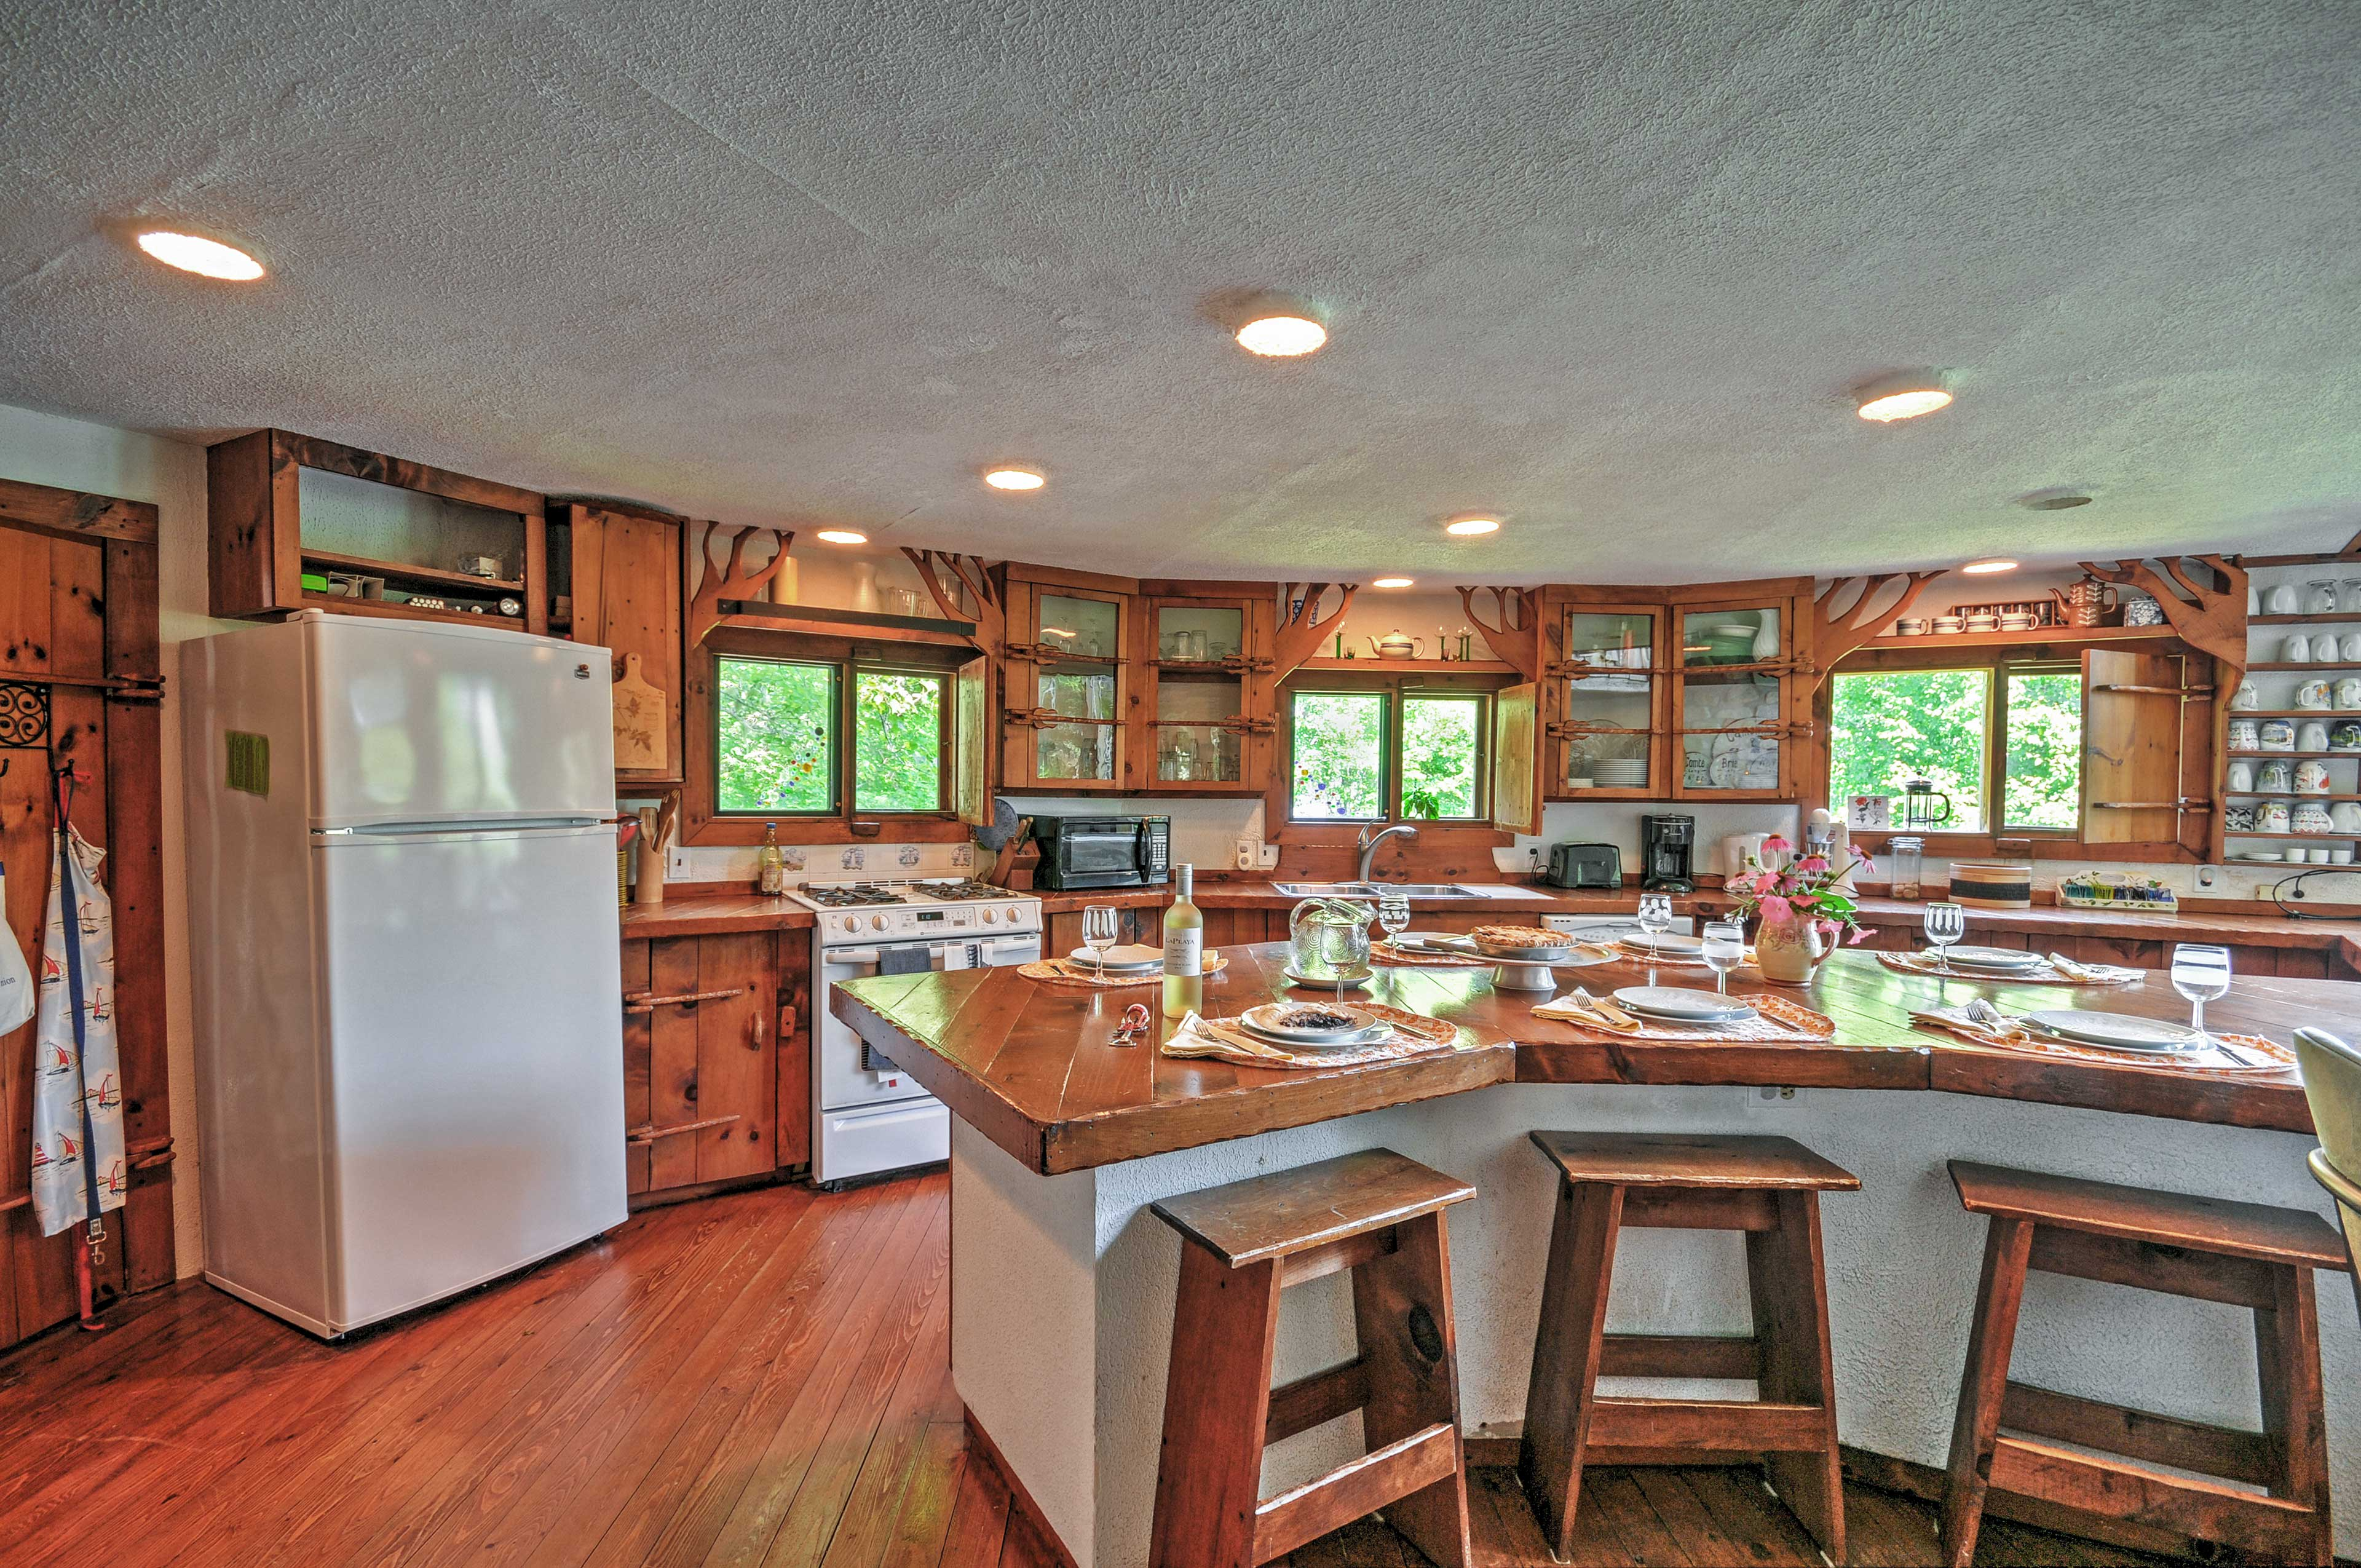 Fully Equipped Kitchen | Cooking Basics | Drip Coffee Maker | Toaster